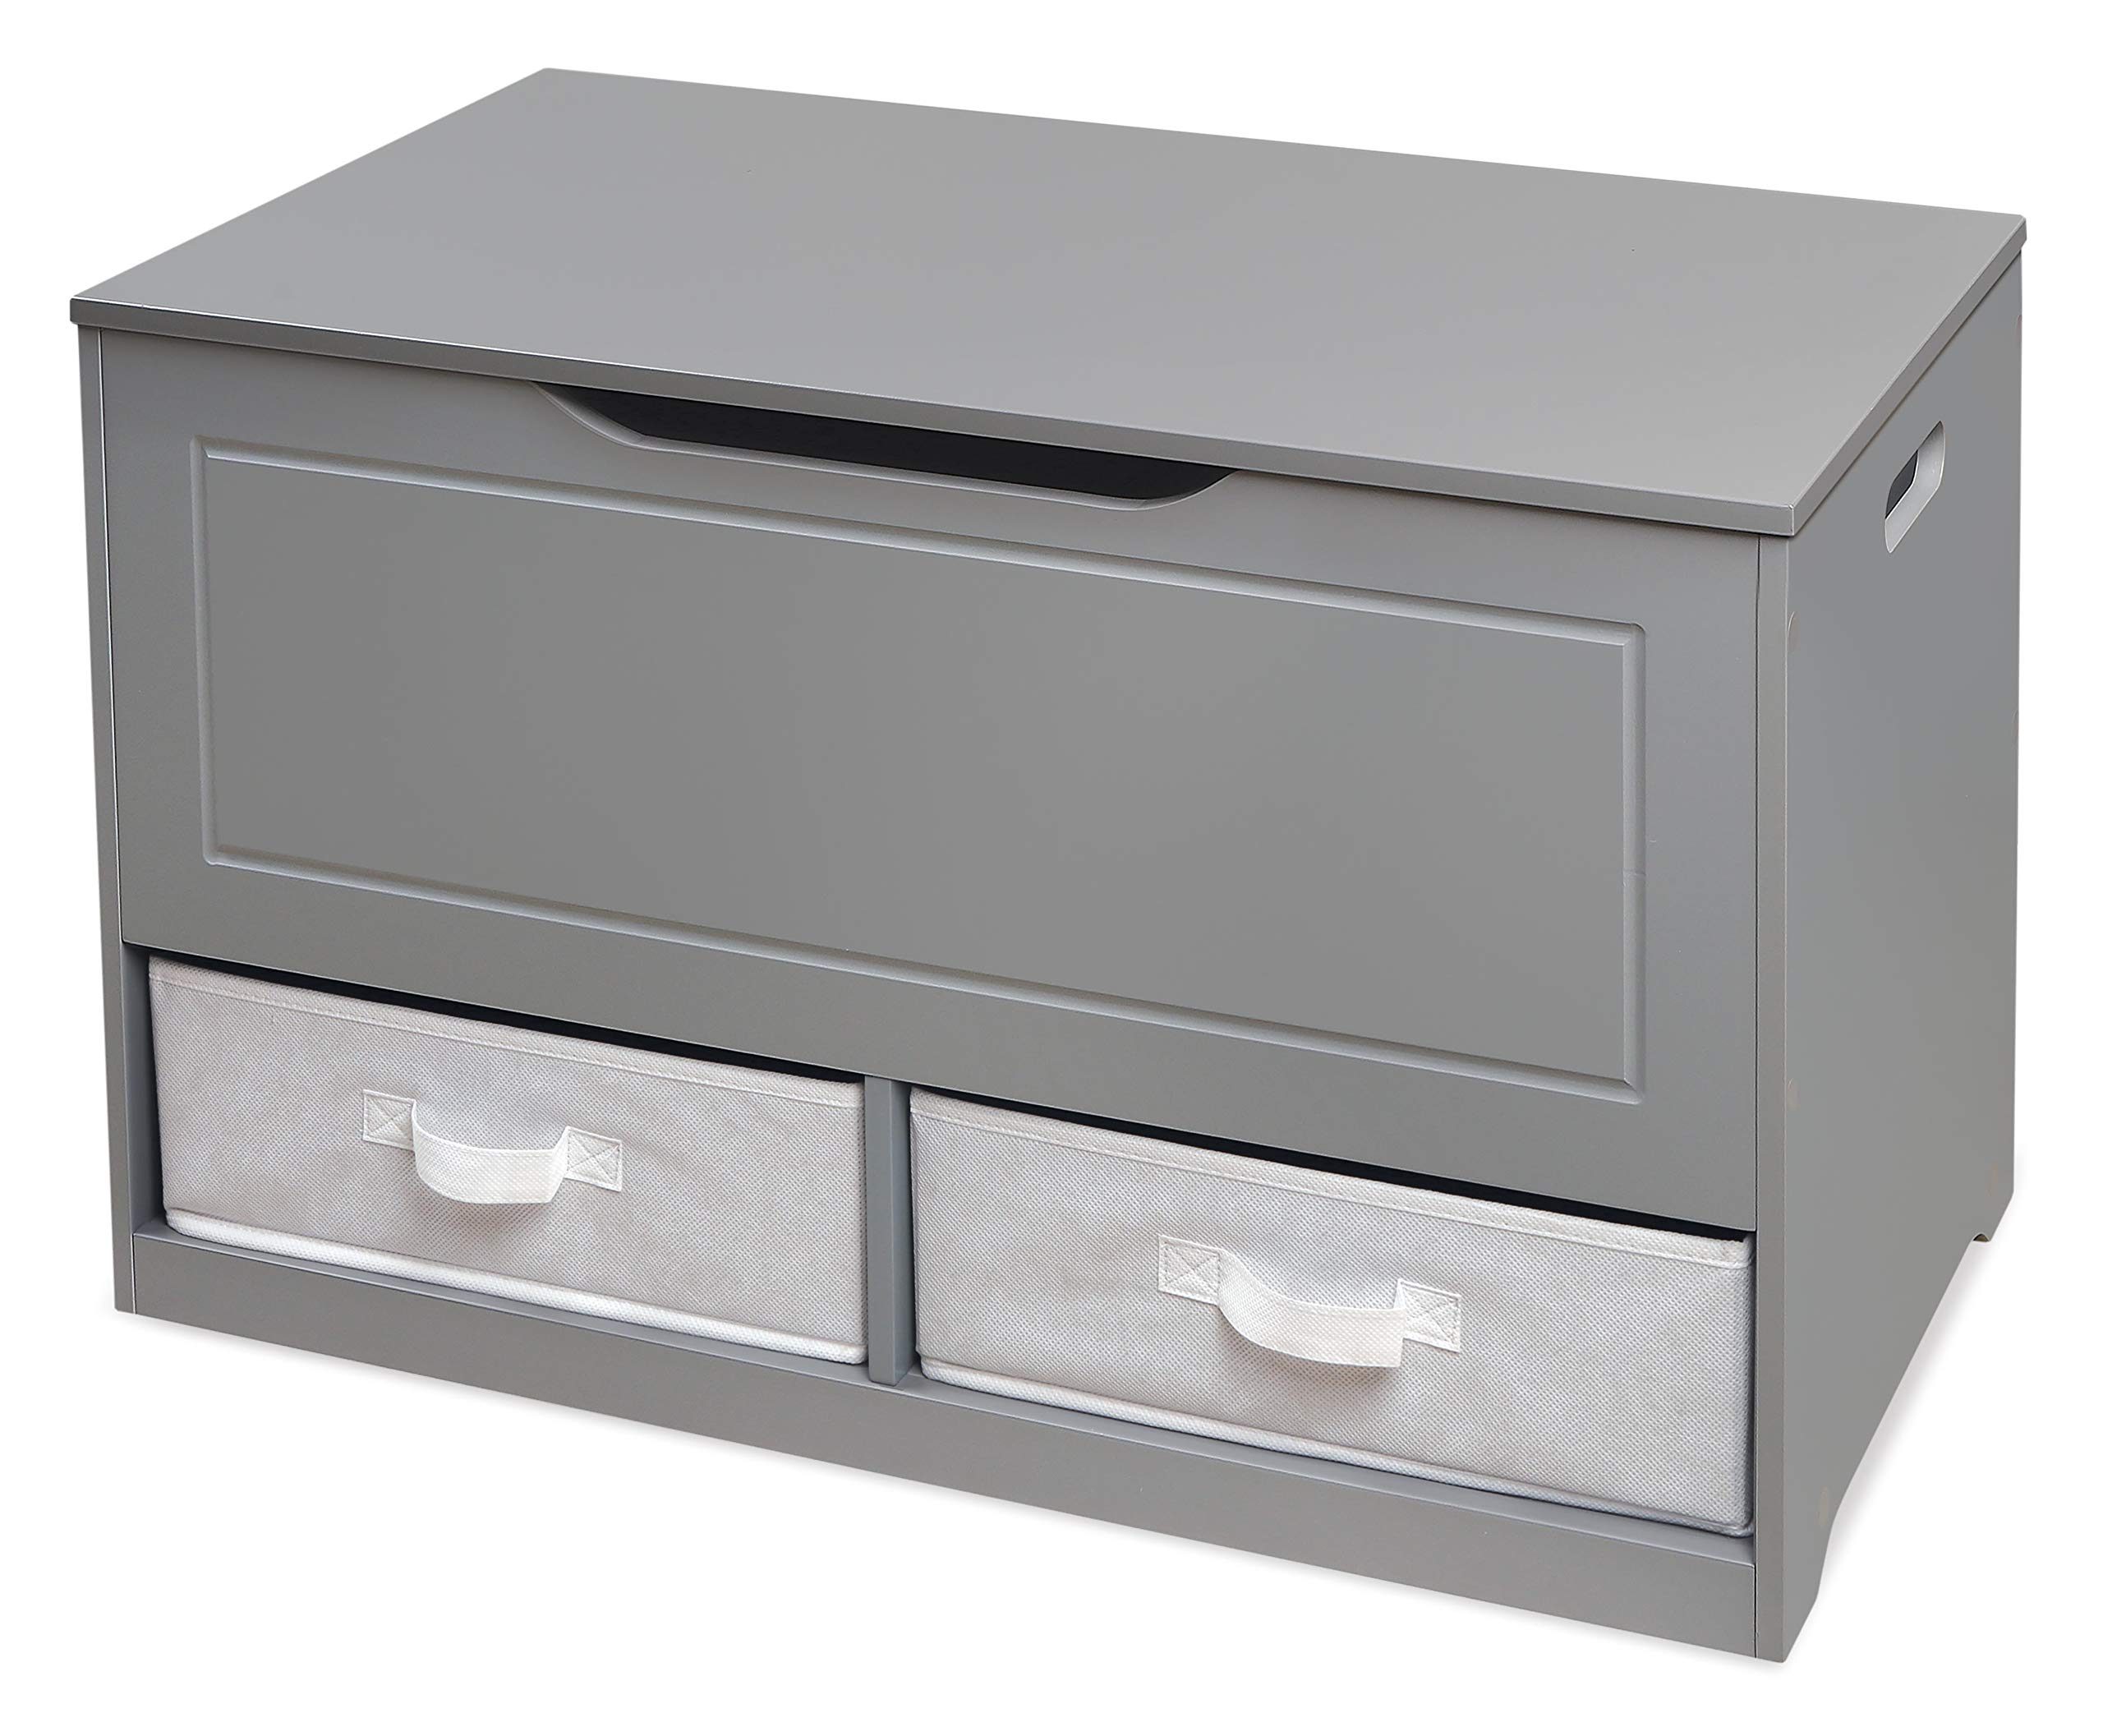 Badger Basket Up and Down Toy and Storage Box with 2 Basket Drawers, Gray/White by Badger Basket (Image #8)